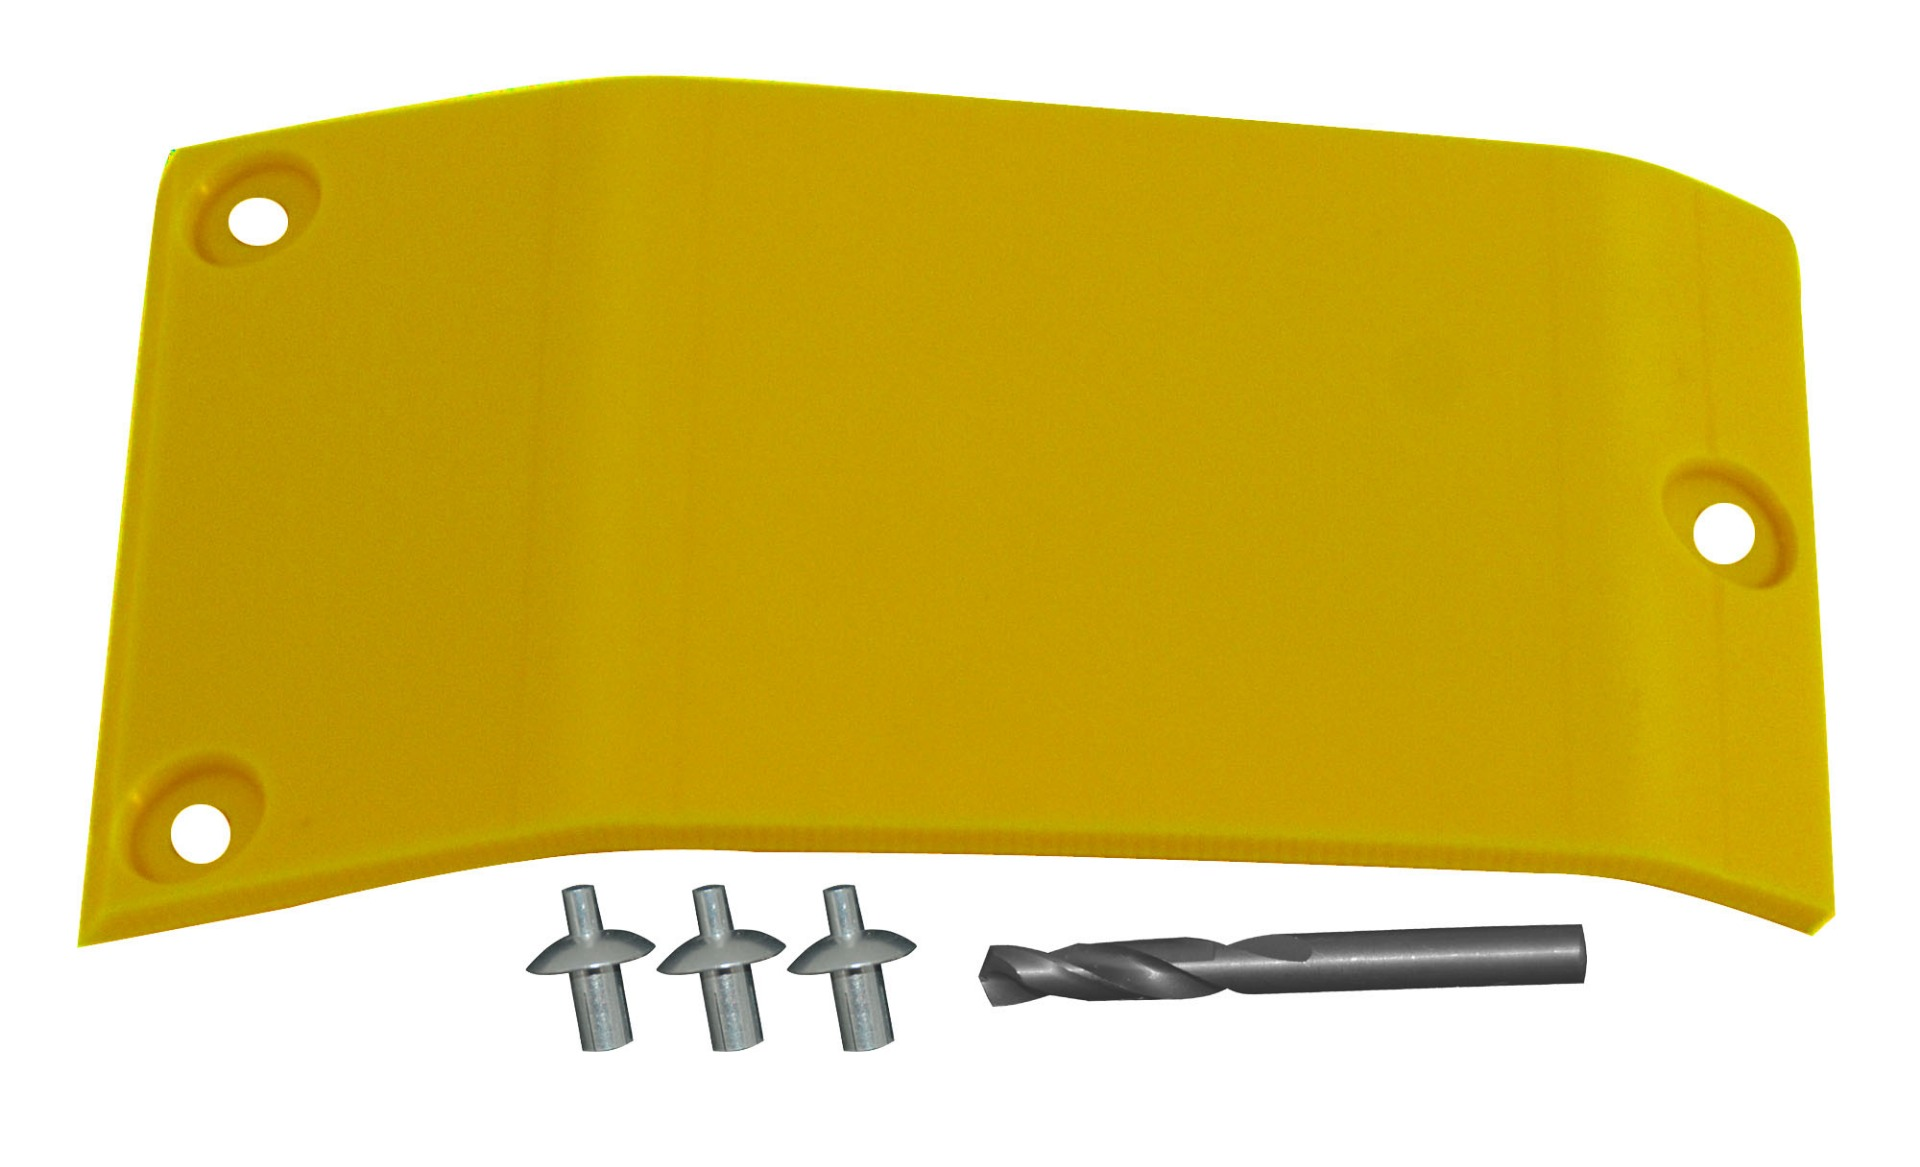 "John Deere 600 Series Flex Panel 5 1/4"" x 9 3/4"" Yellow"